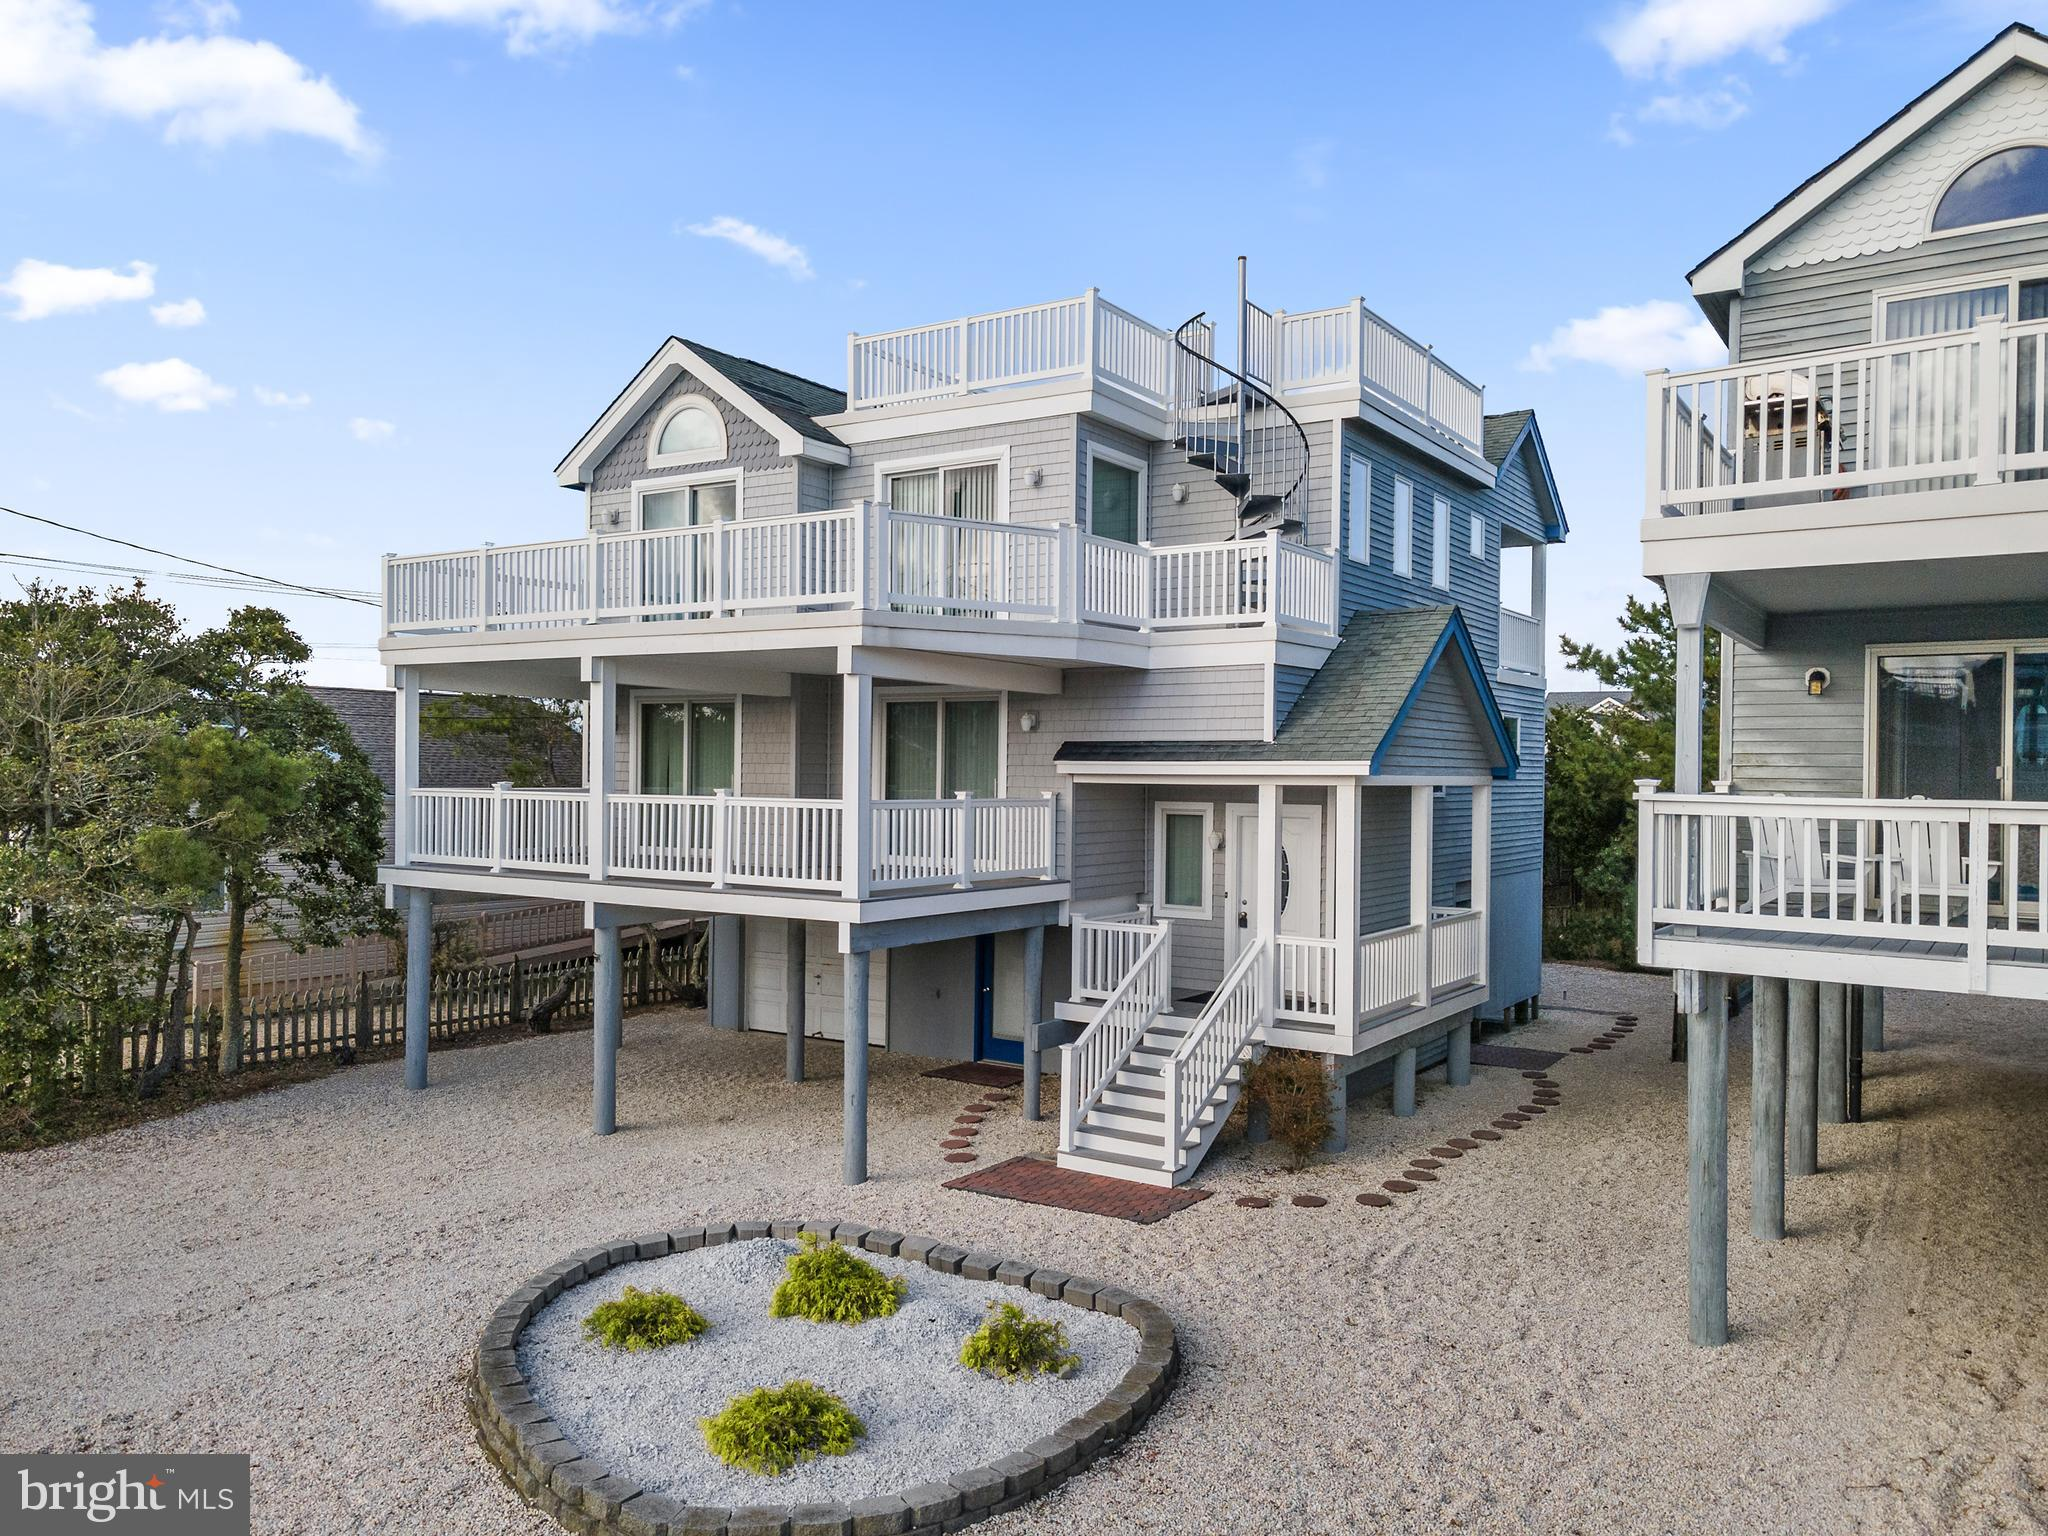 29 N 4th St, Surf City, NJ, 08008